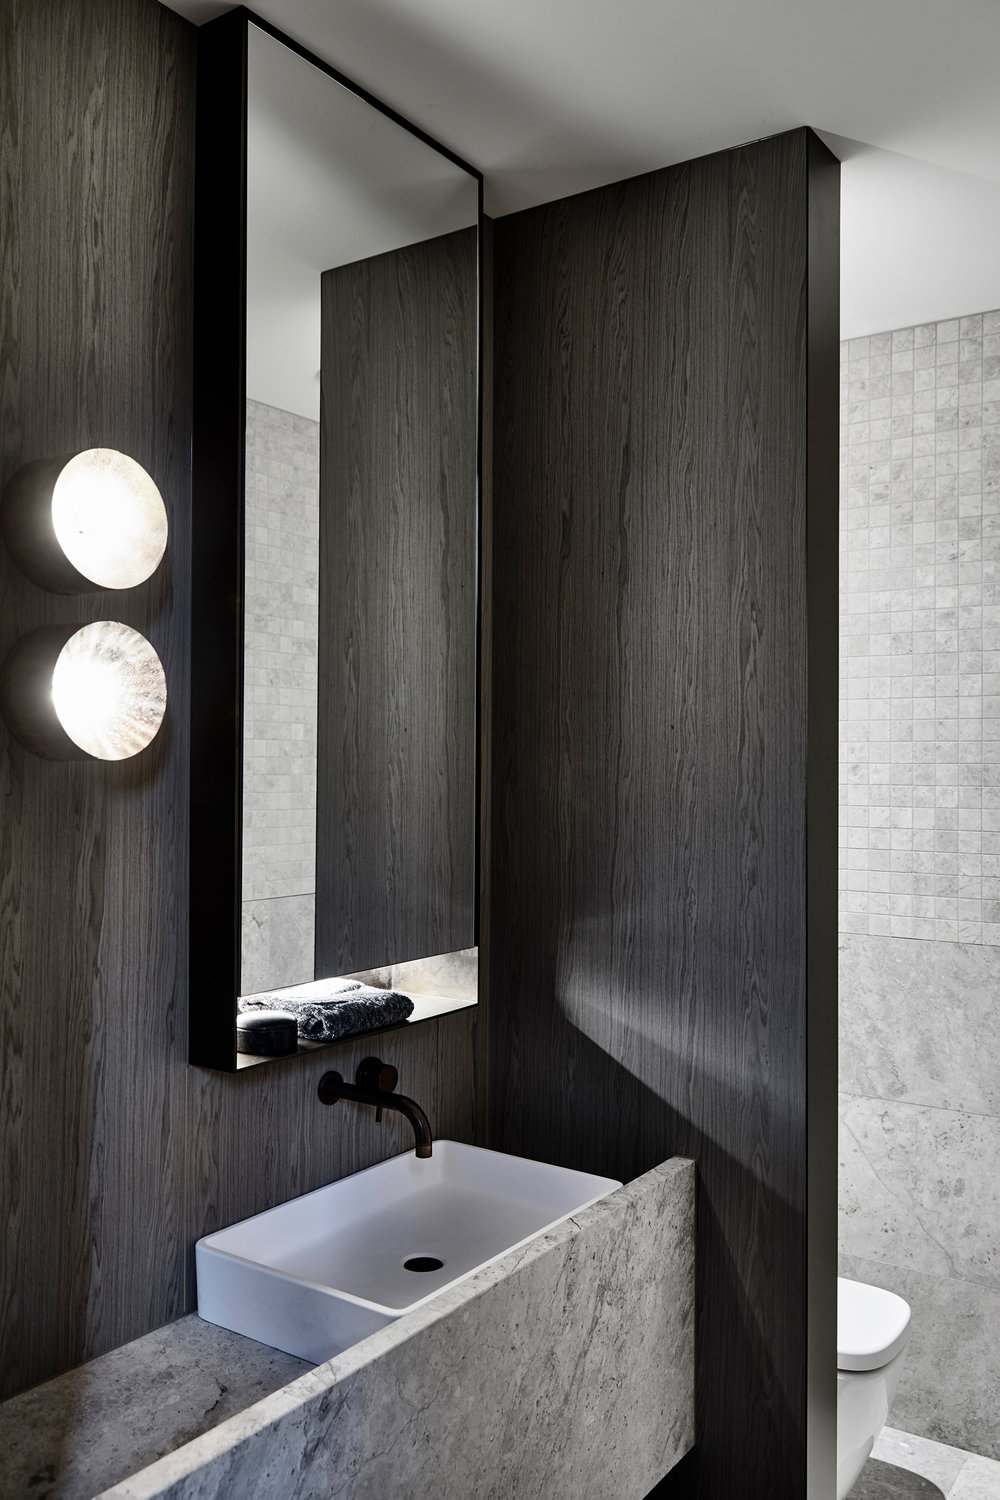 Workroom Architetcure_Agushi building_Meanwhiloe in Melbourne - Bathroom Design